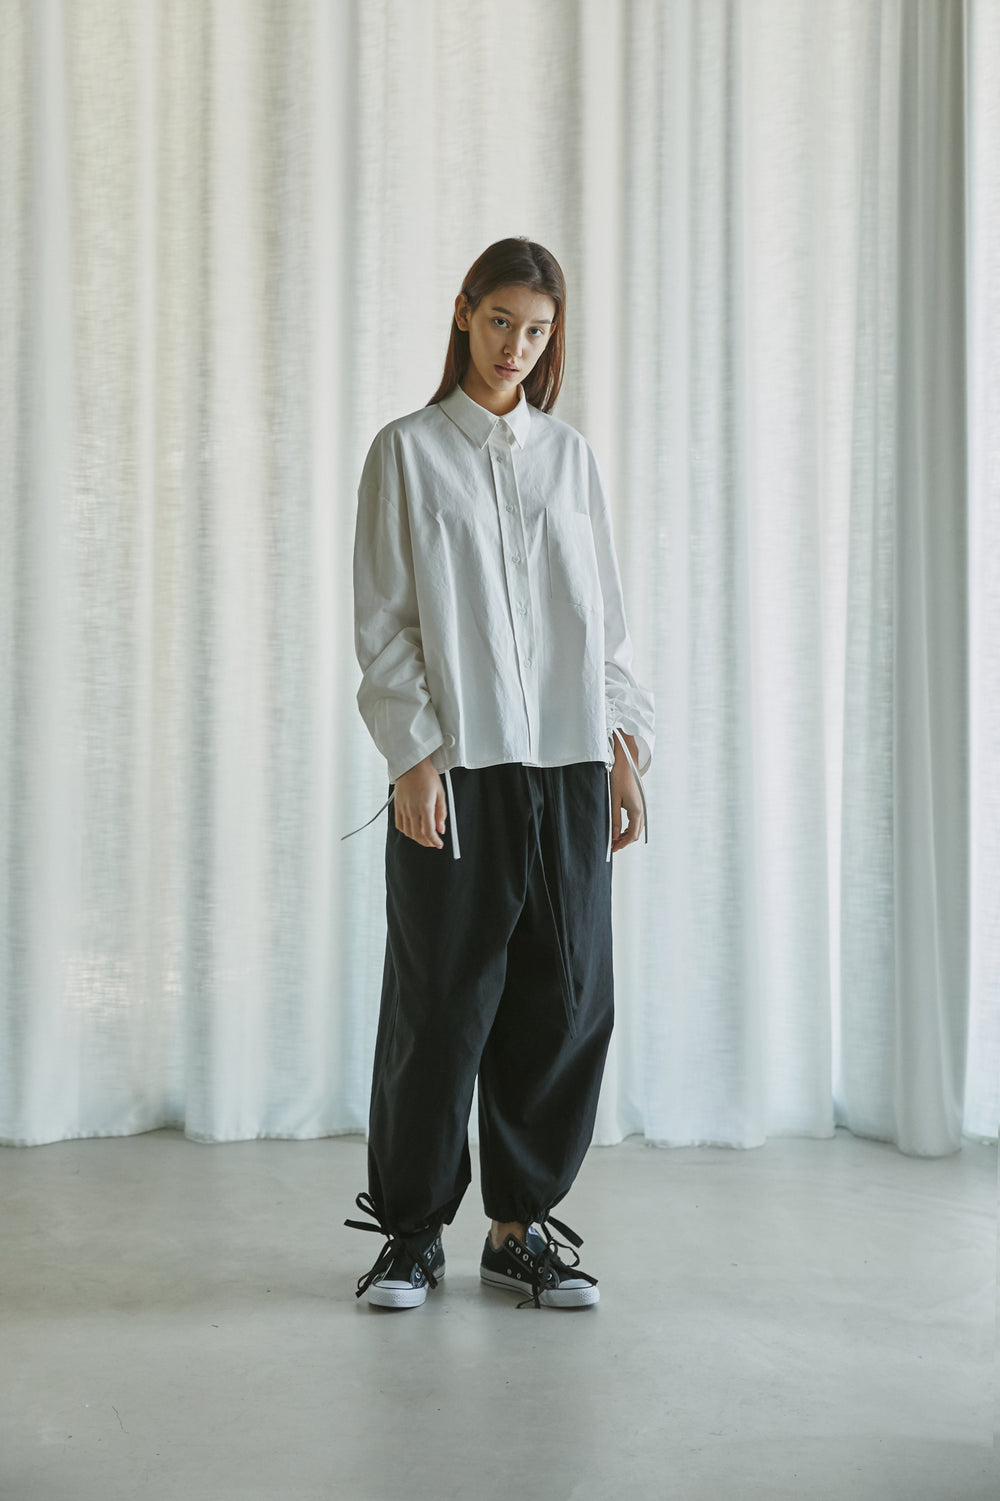 [Pre-Order 20% OFF untill 1/31] SS21 UNISEX LINEN STRING PANTS